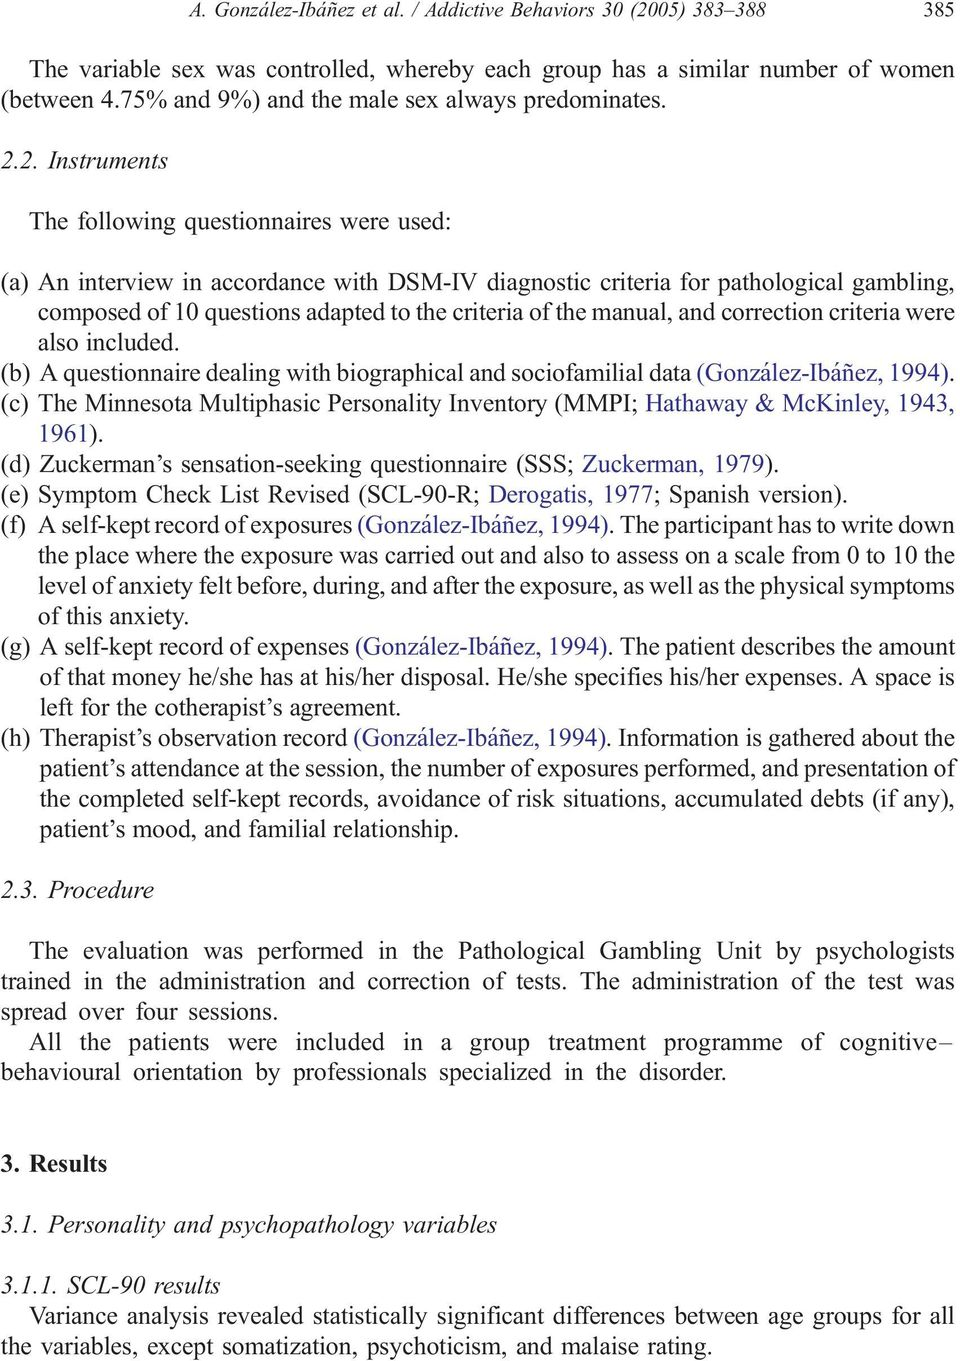 the manual, and correction criteria were also included. (b) A questionnaire dealing with biographical and sociofamilial data (González-Ibáñez, 1994).